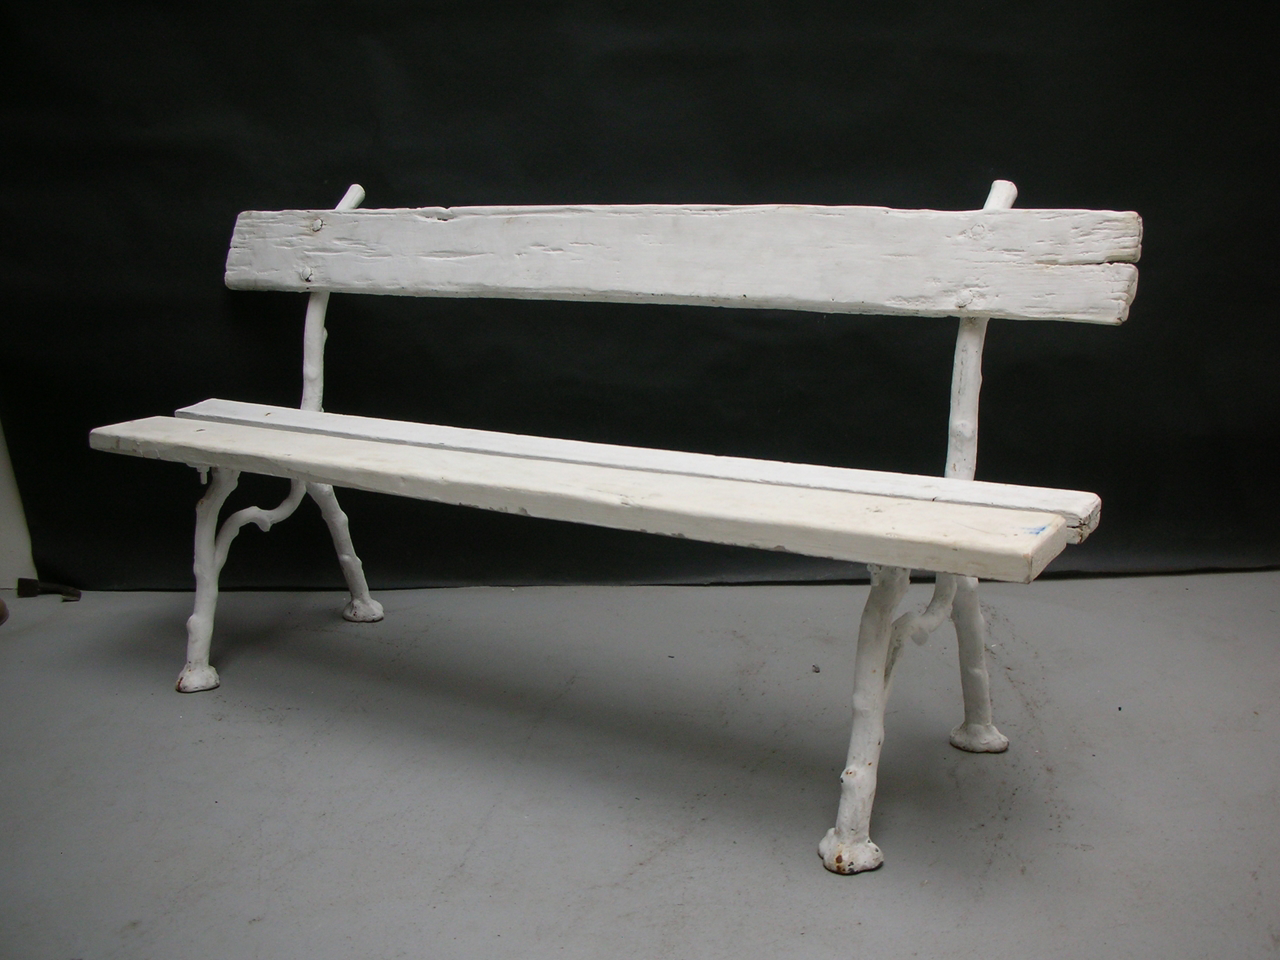 Picture of Bench n° 4